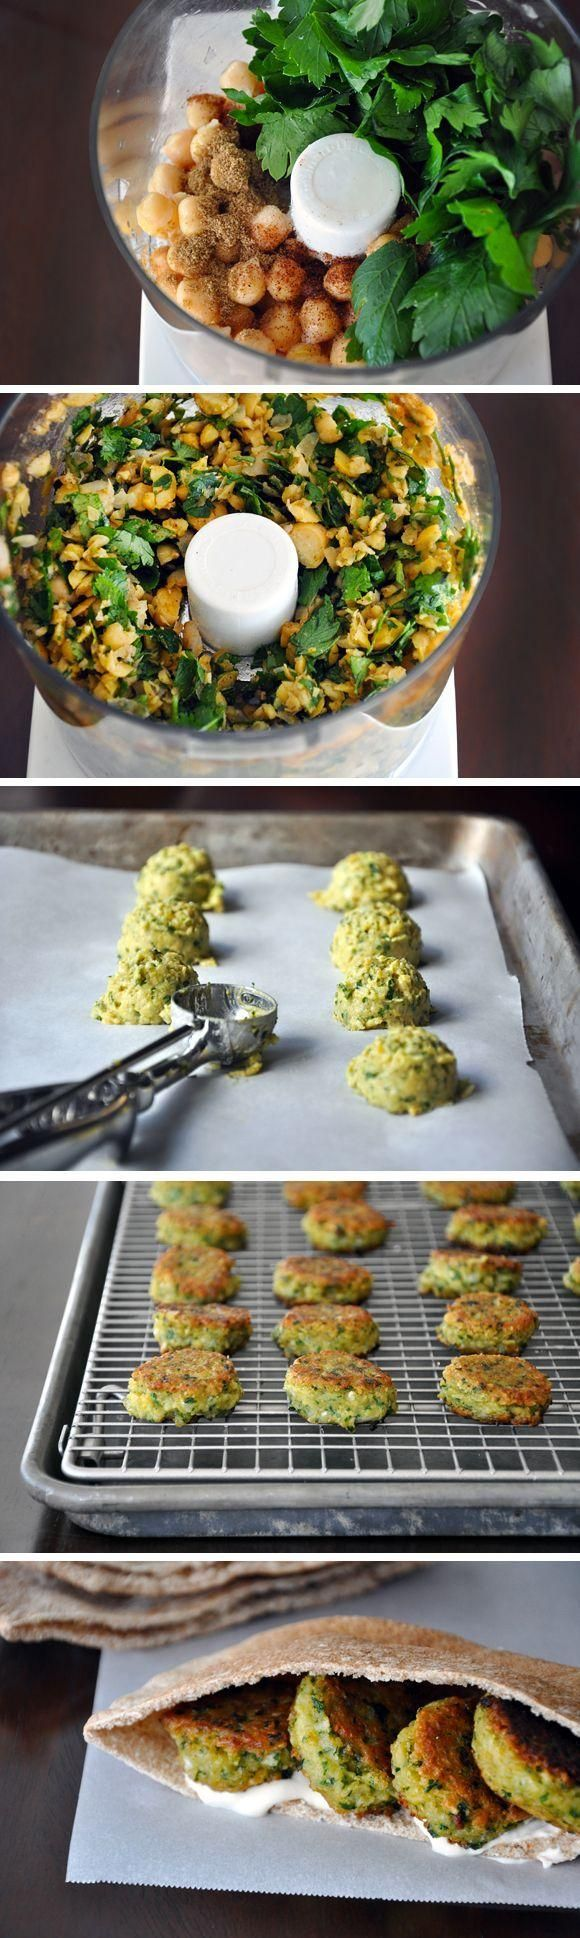 Homemade Falafel with tahini sauce. This is a nice recipe. Falafel is one of my favorite dishes to make at home. :)